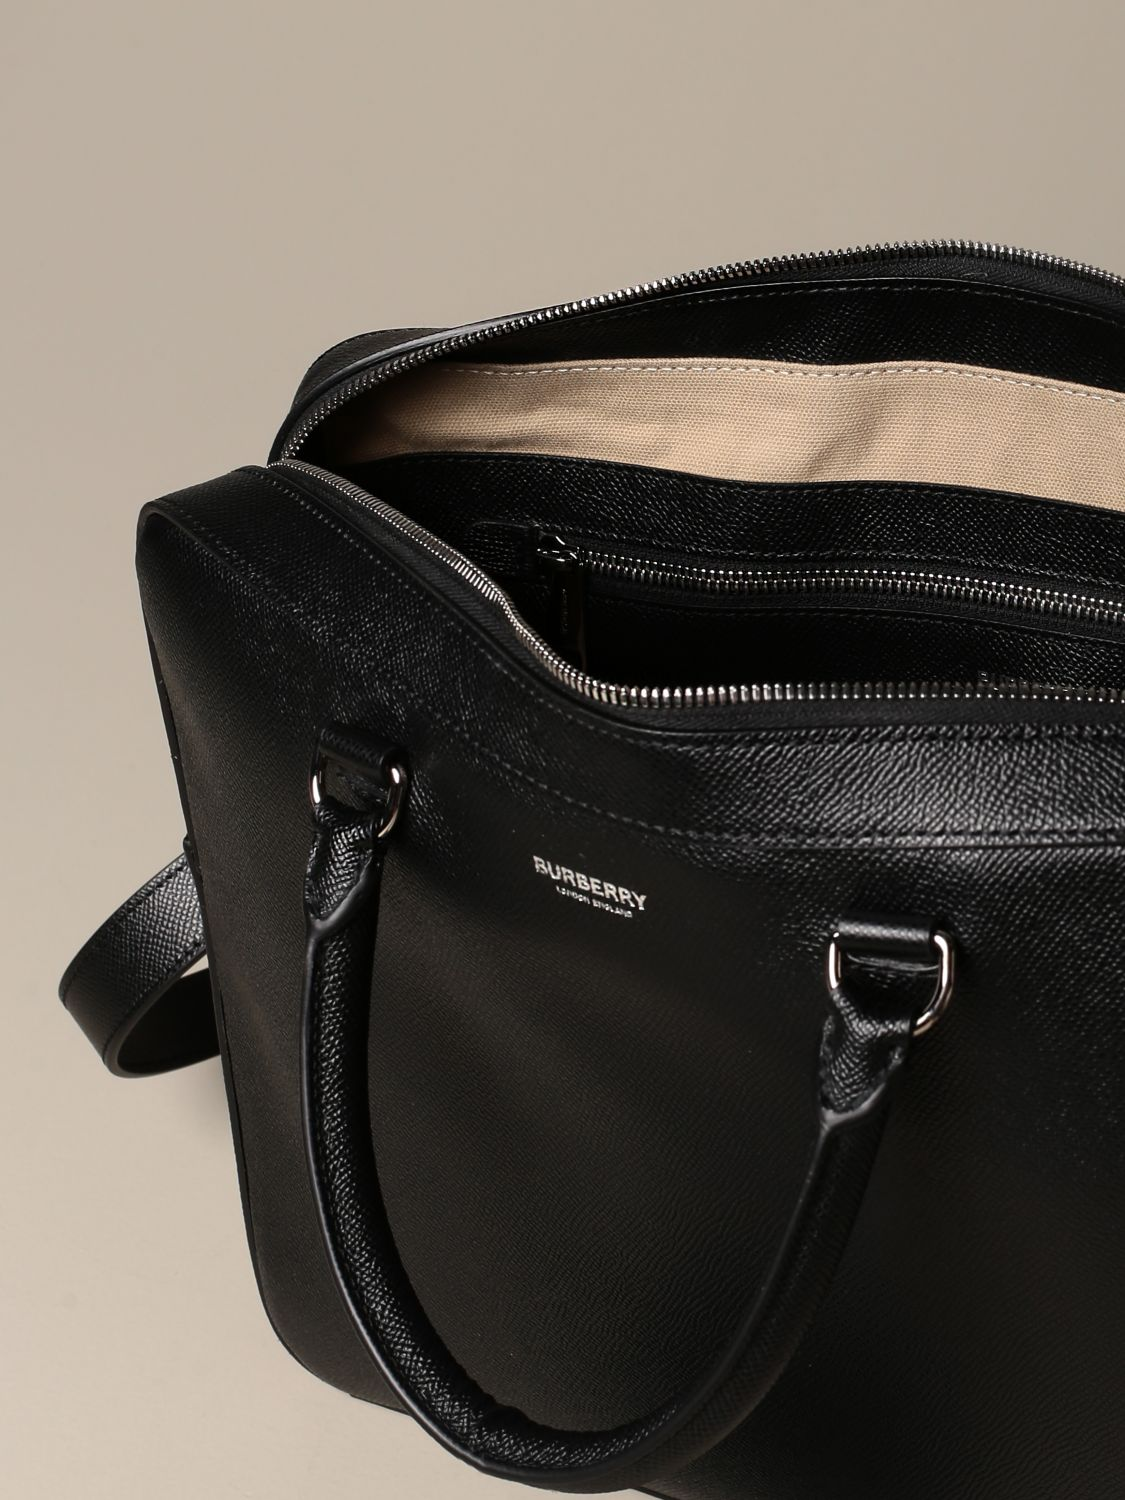 Bags Burberry: Burberry briefcase in grained leather black 4